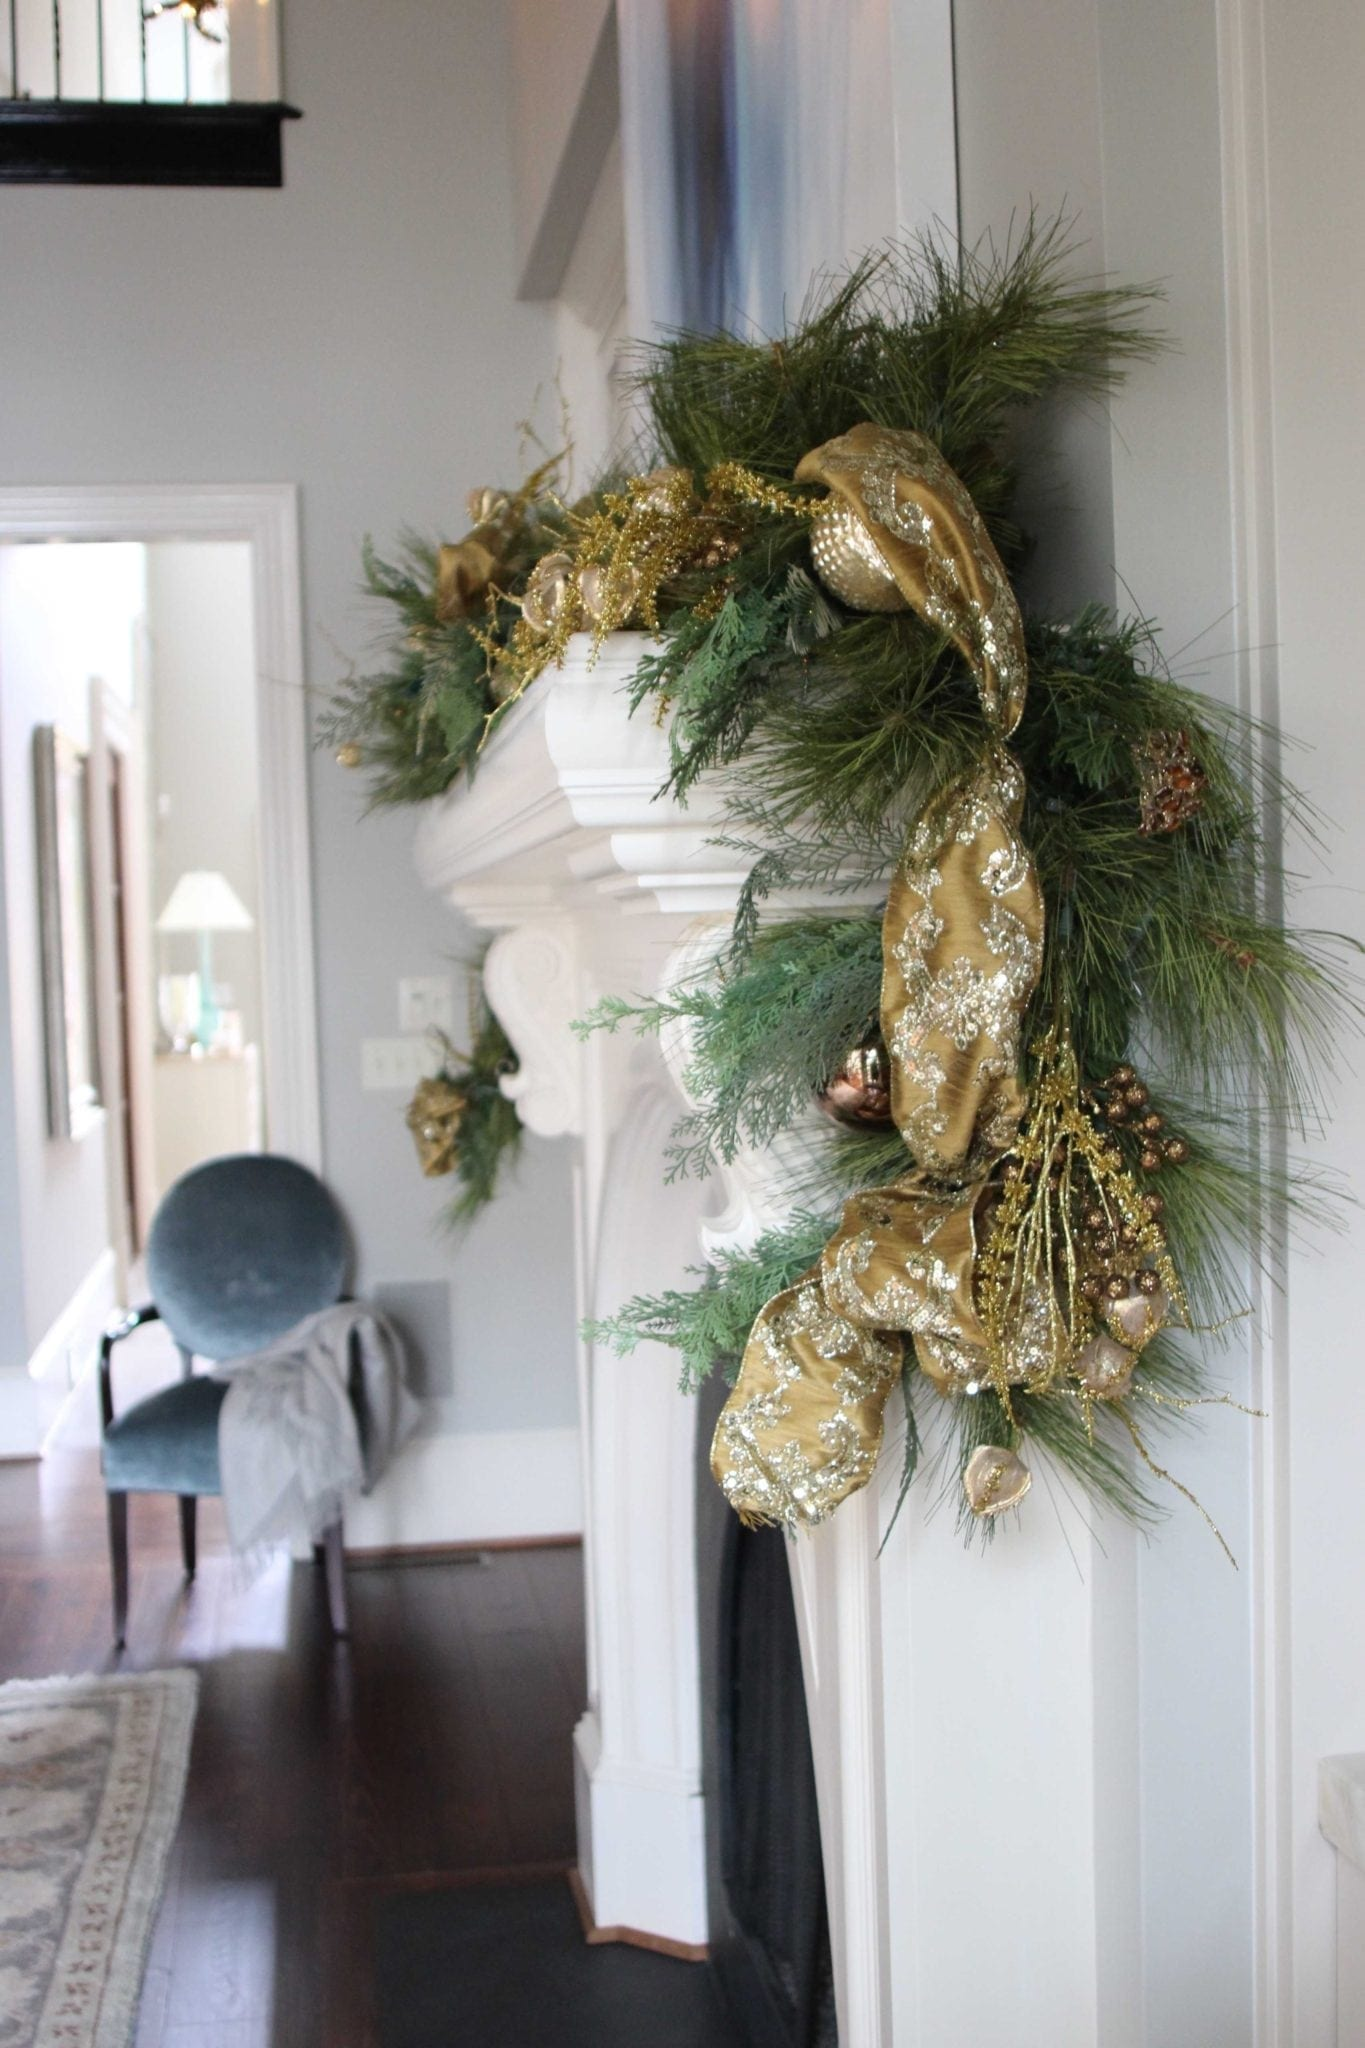 Frontgate gold garland for formal dining room holiday decor.